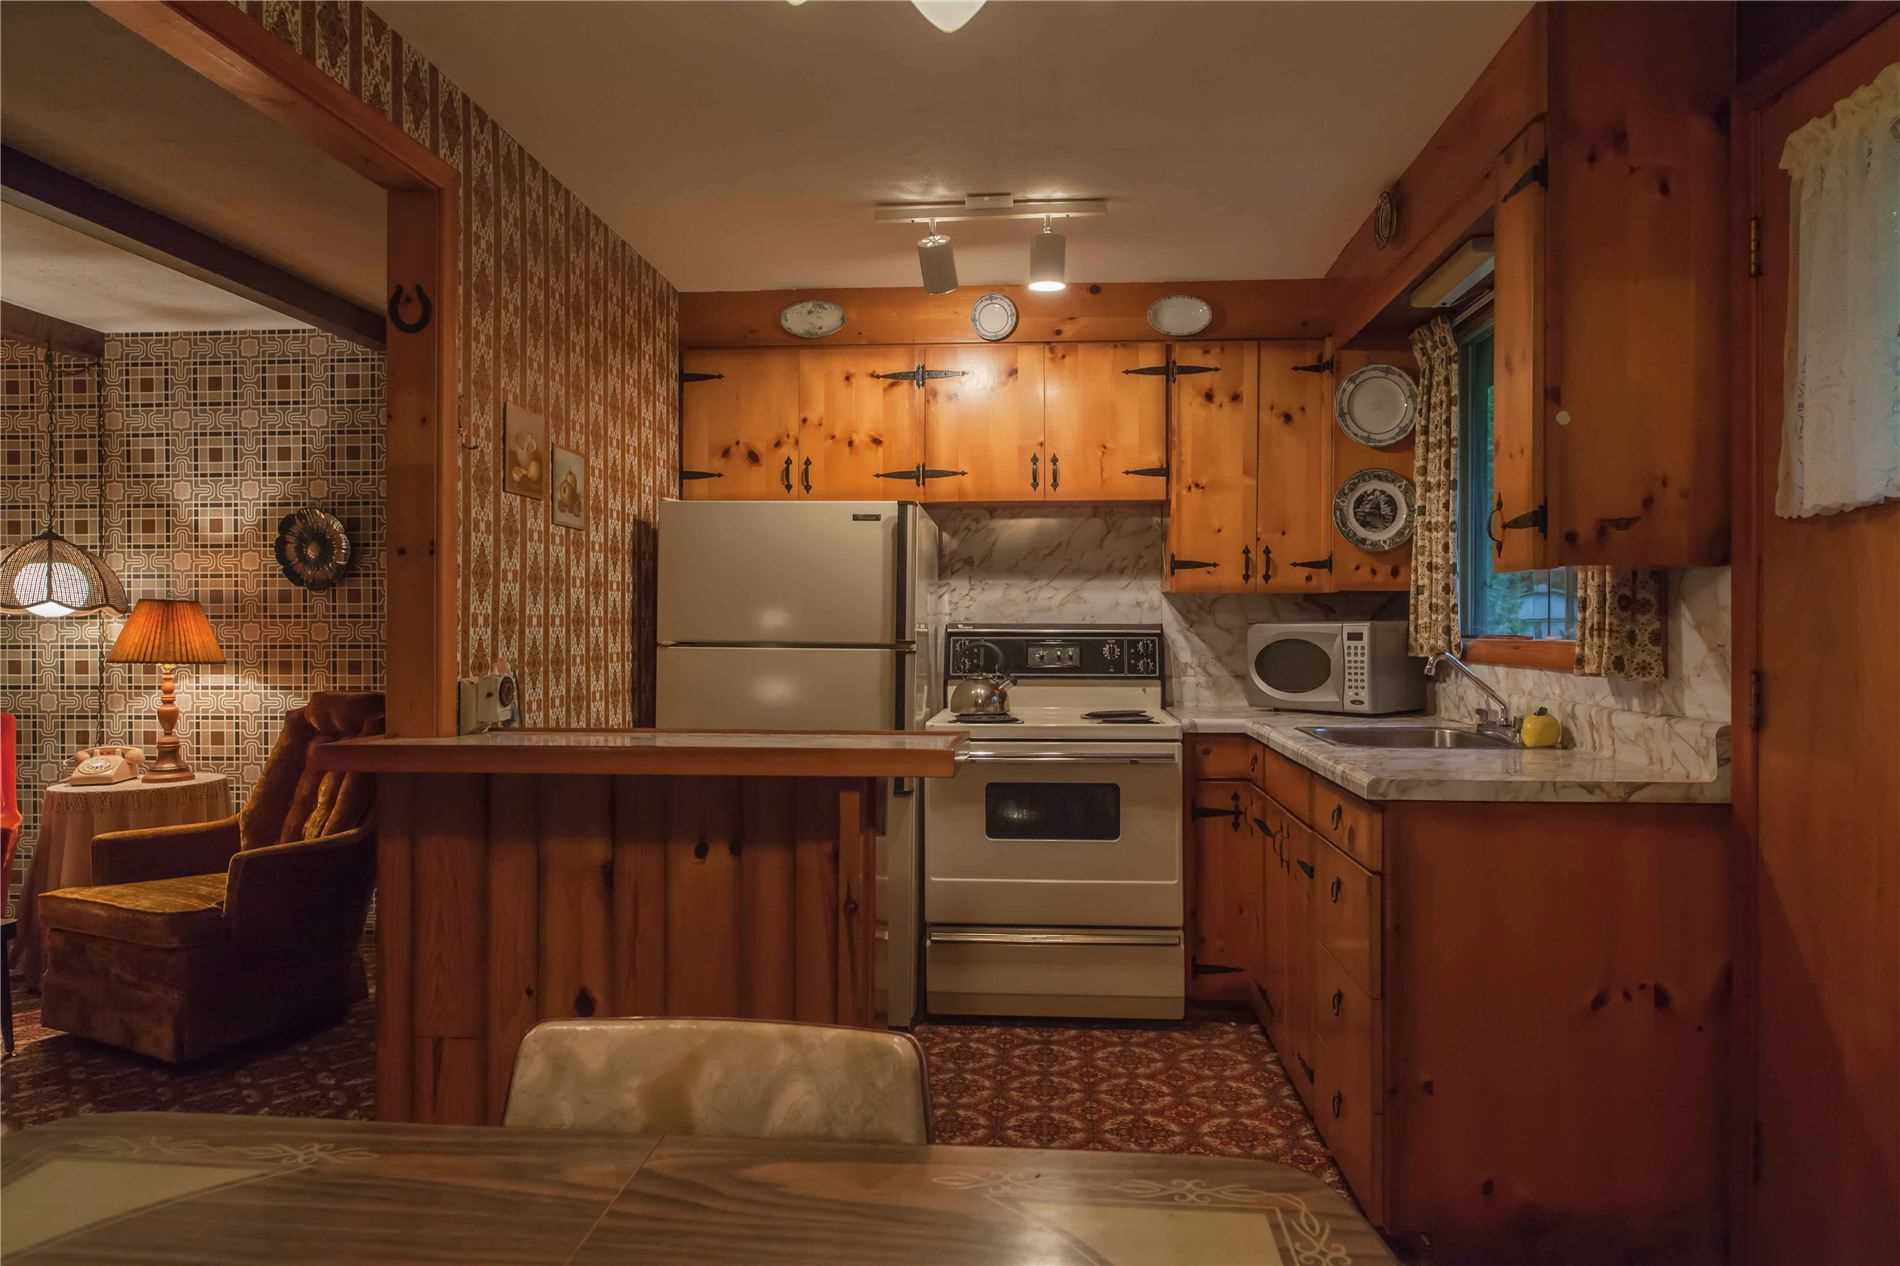 318 Sixth St S, South Bruce Peninsula X4577587